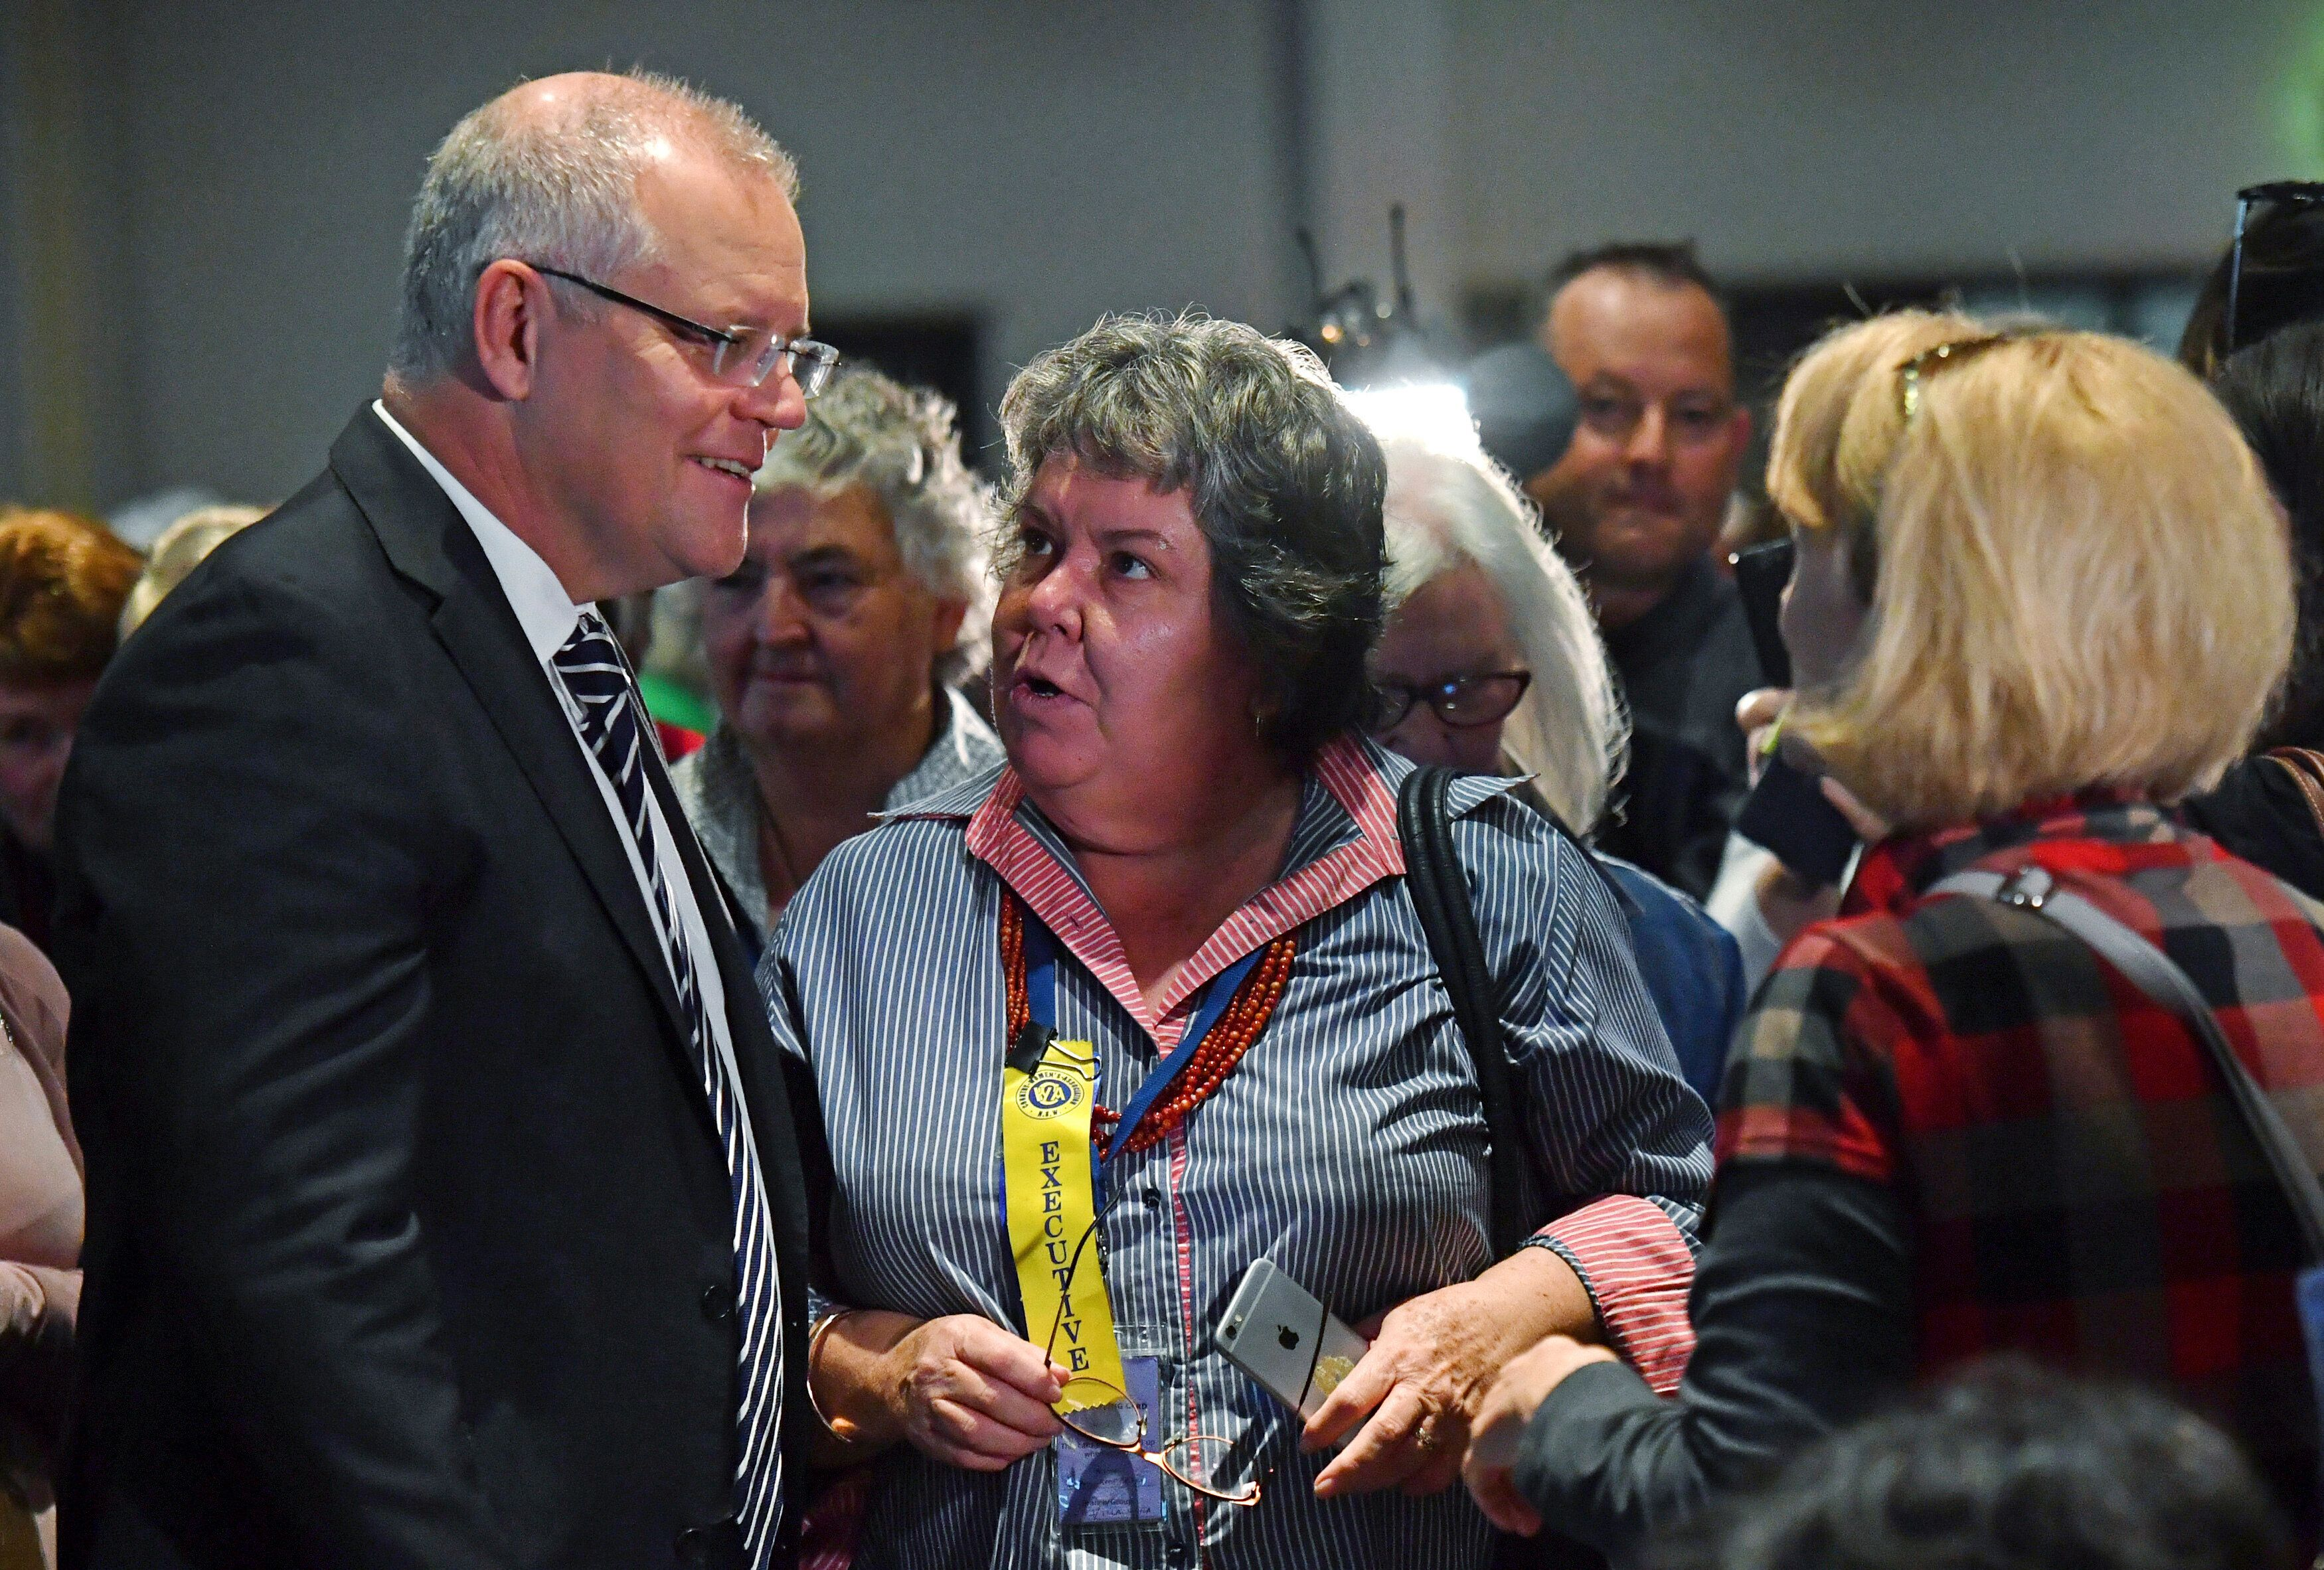 Australian Prime Minister Scott Morrison, left, talks with attendees at the Country Women's Association NSW annual conference